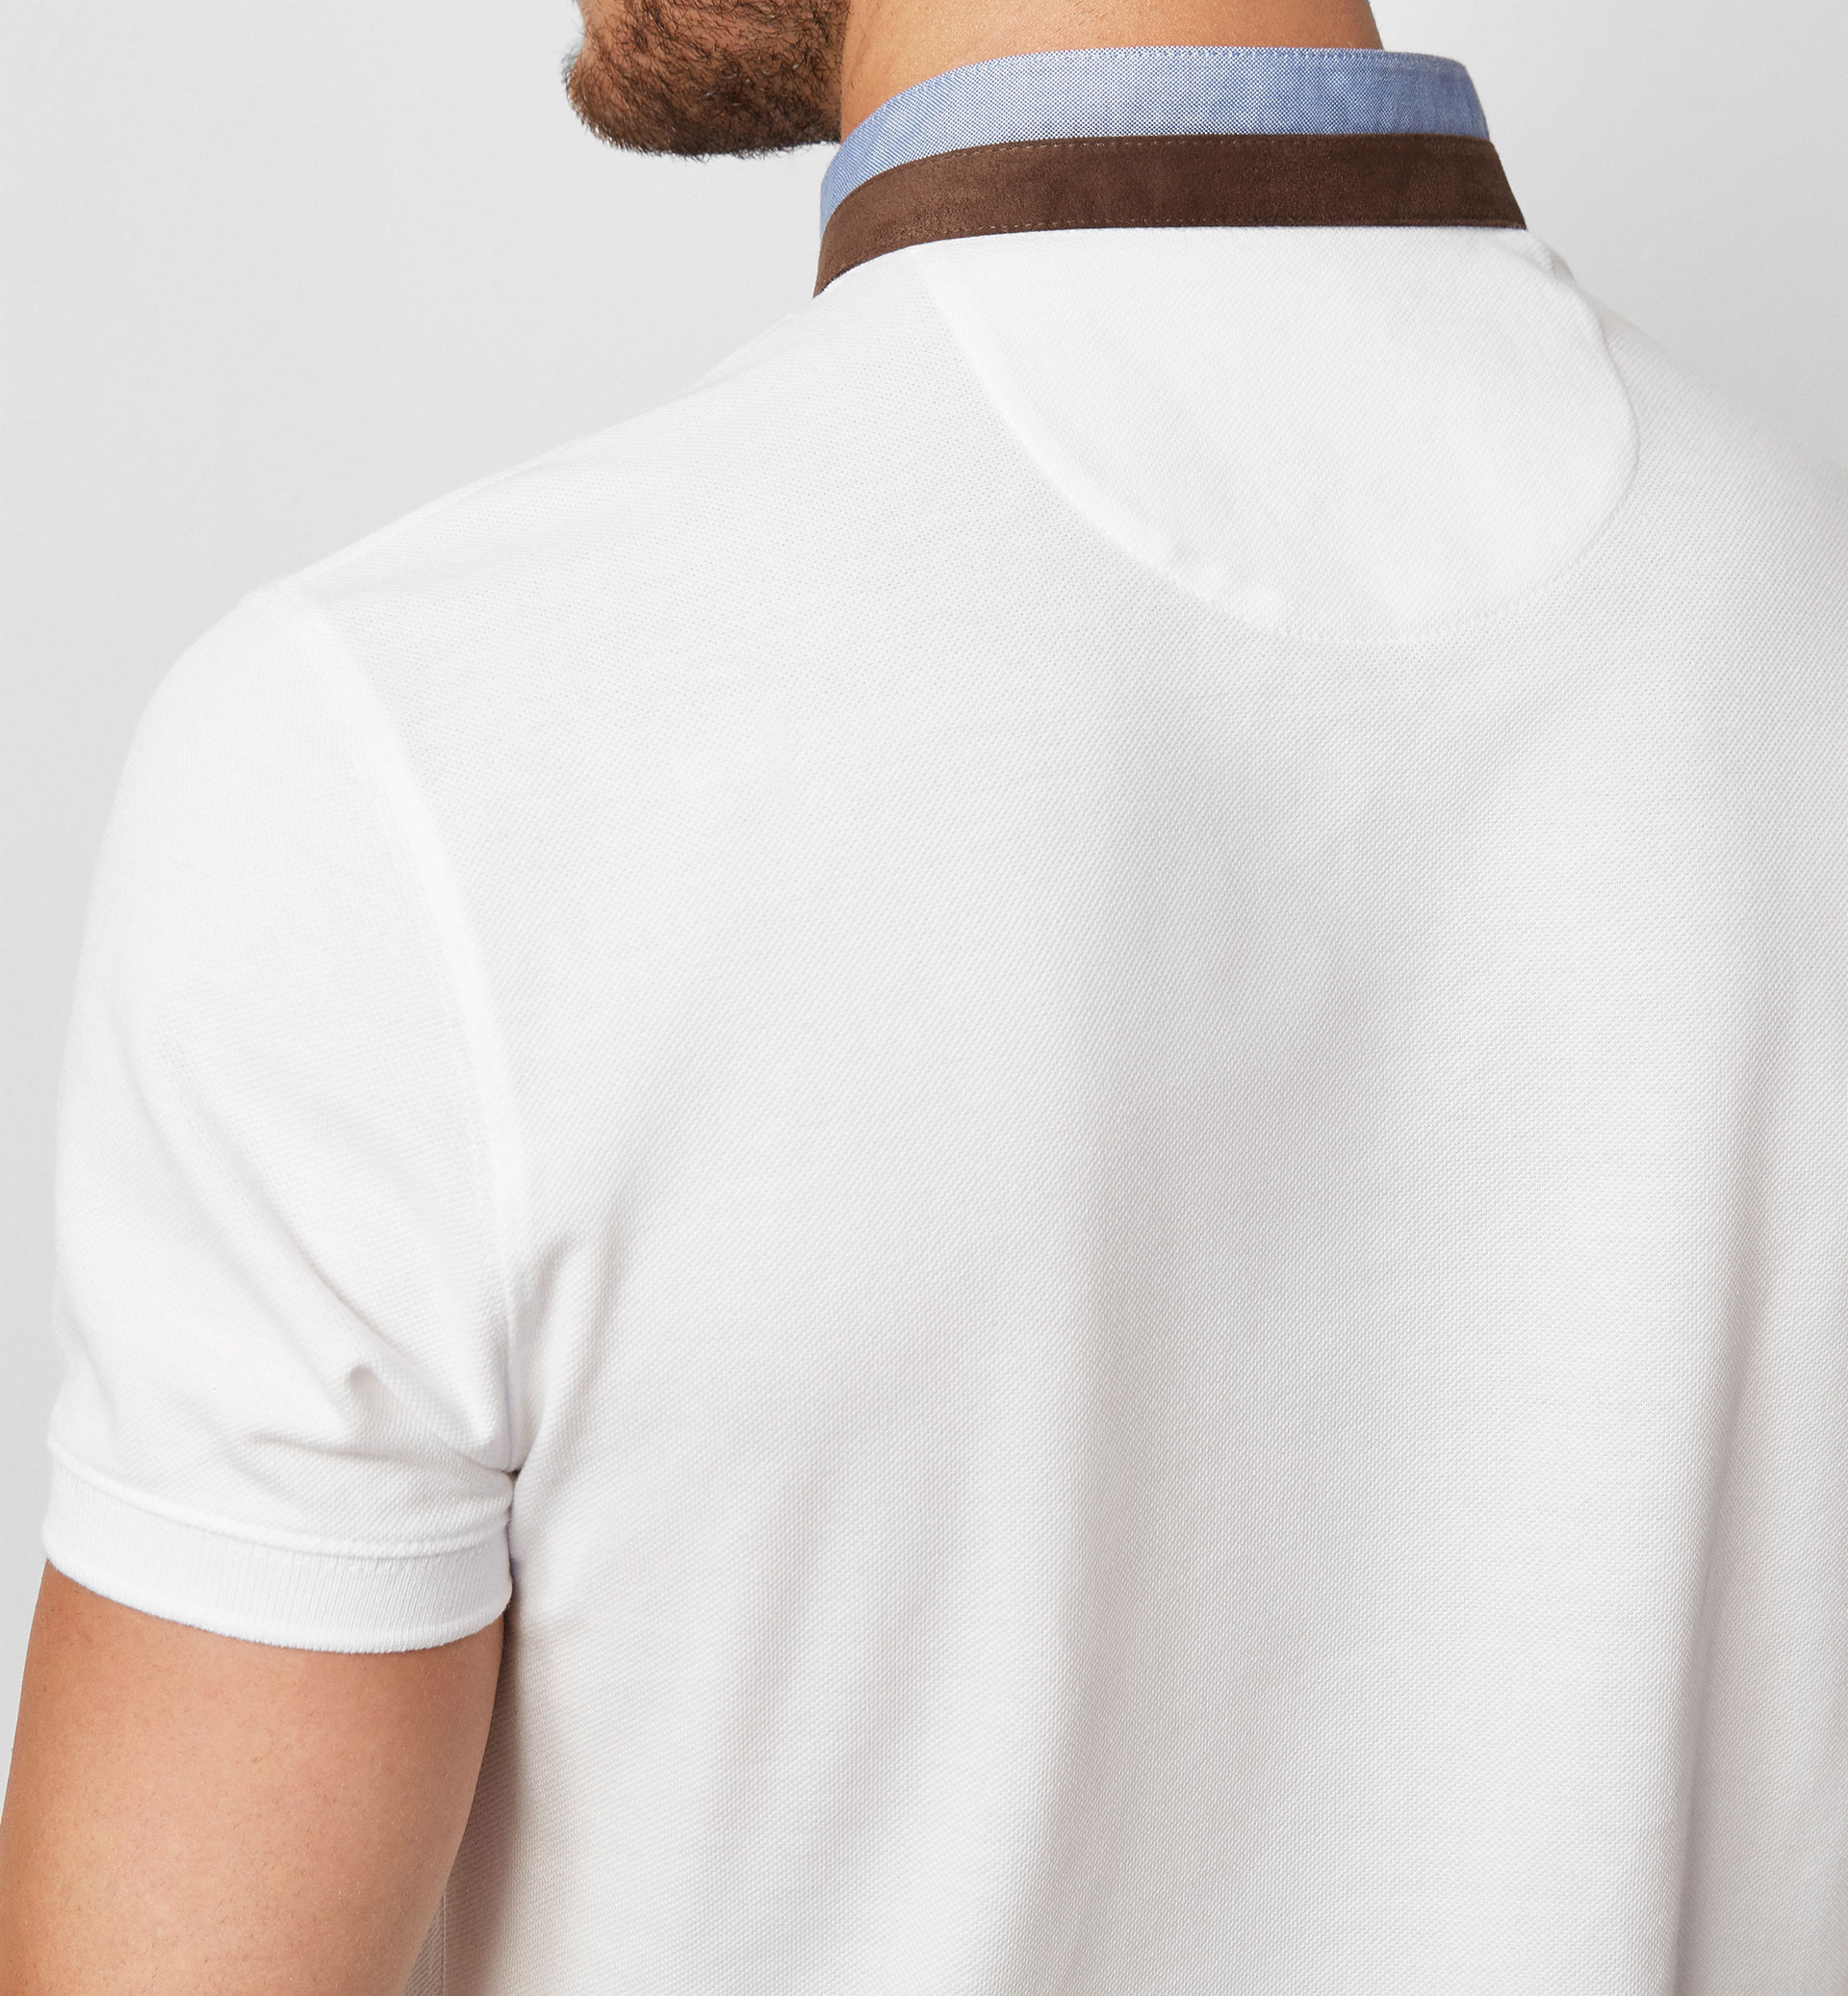 LIMITED EDITION POLO SHIRT WITH LEATHER CREST